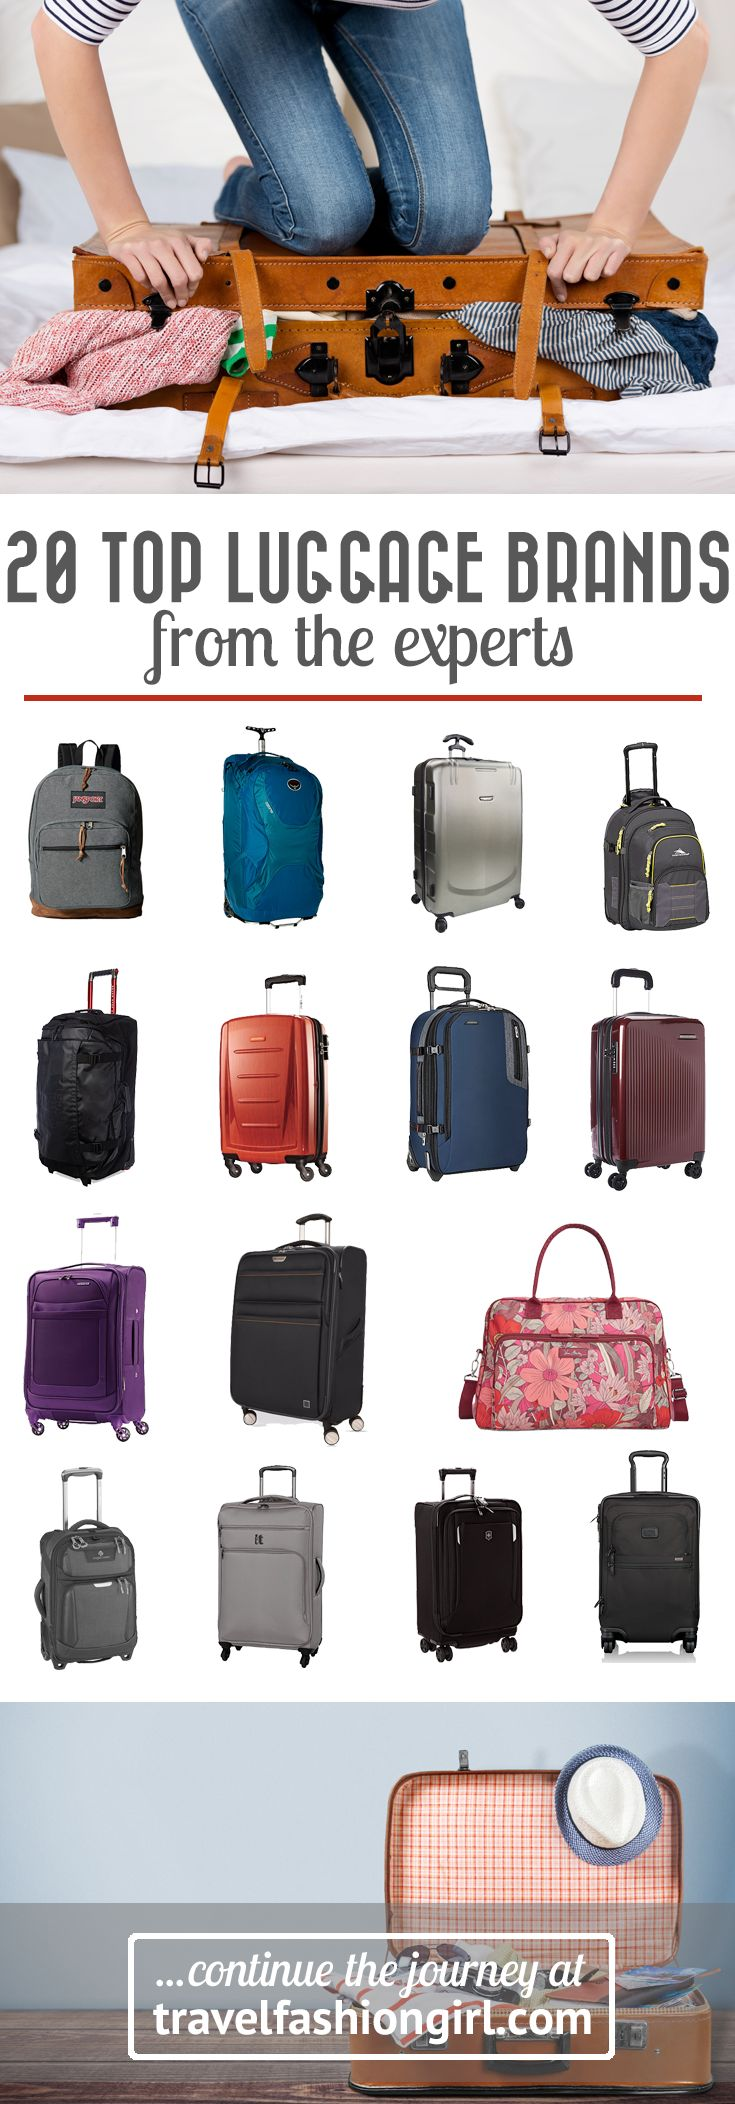 Best Selling Luggage Brands | Luggage And Suitcases